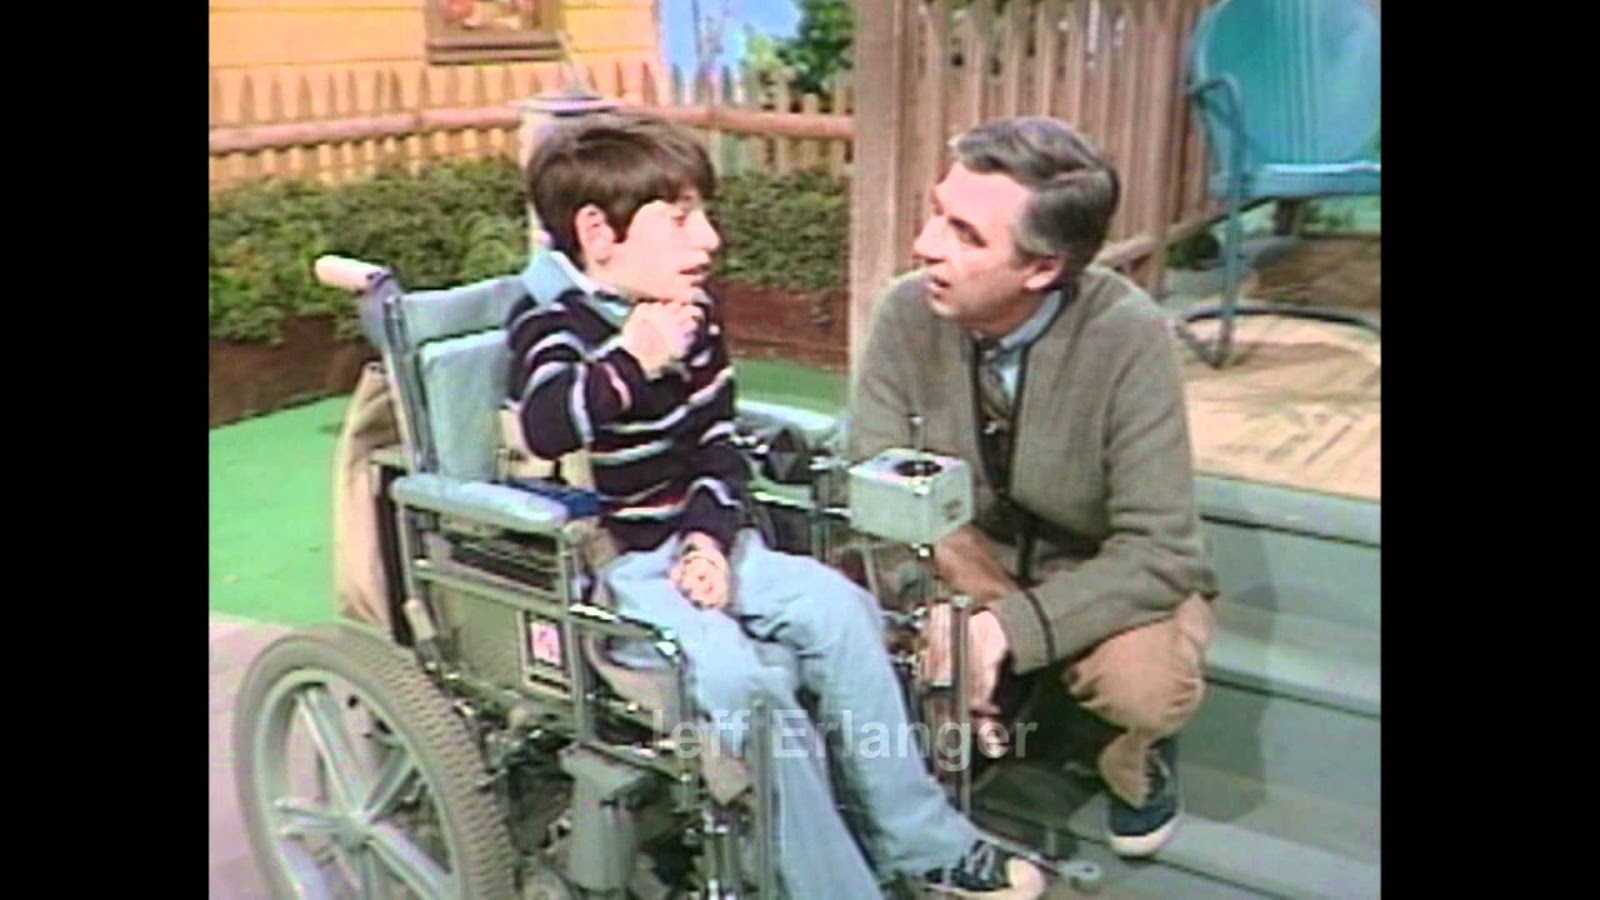 All Things Are Bound Together All Things Connect Mr Rogers Sings It S You I Like A Song He Composed With A Disabled Child In Wheelchair